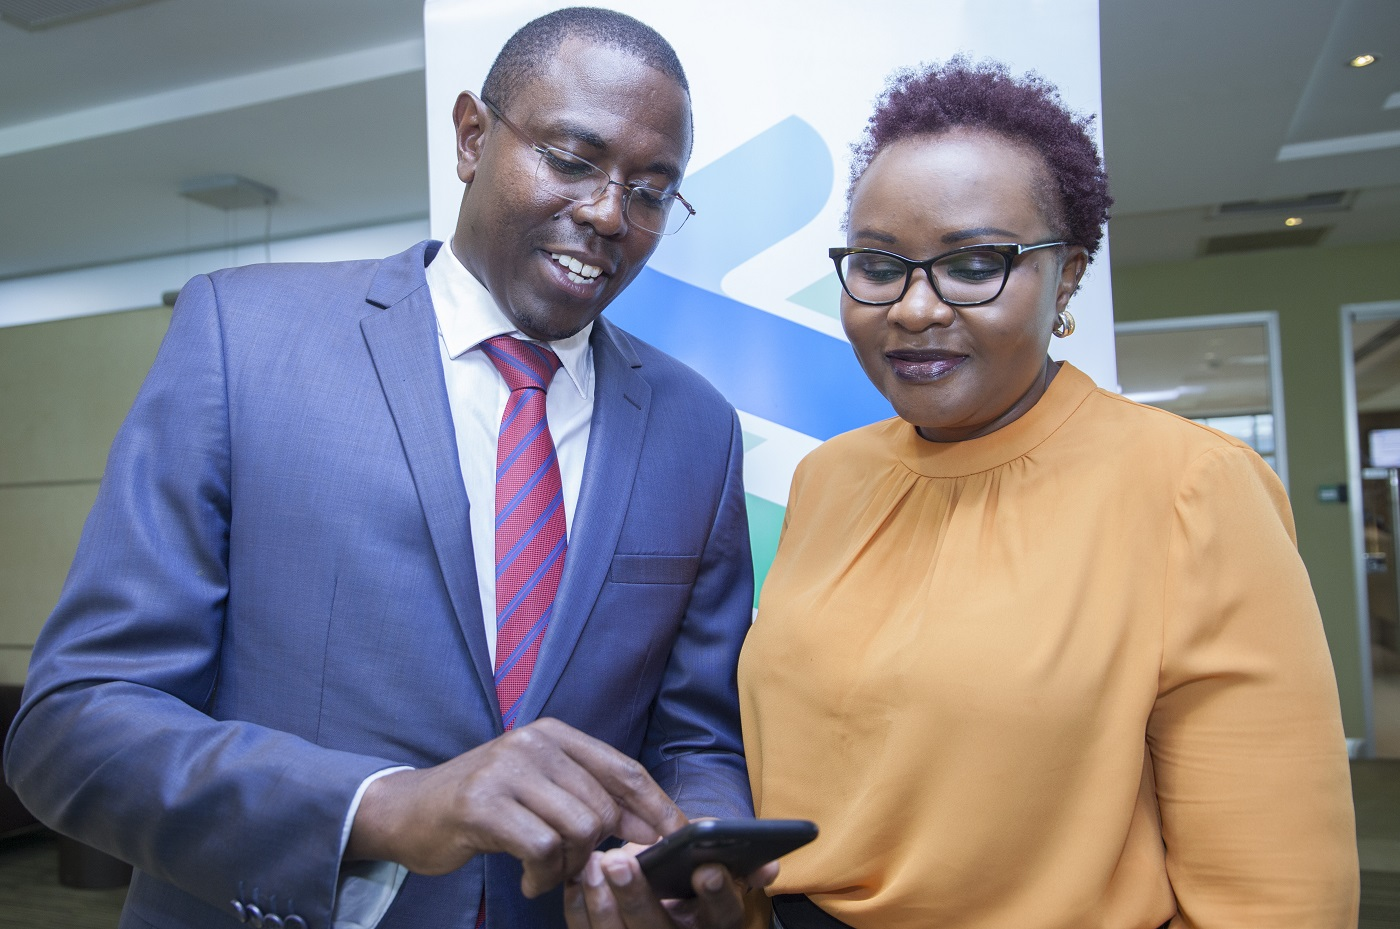 Standard Chartered Head of Wealth Management Kenya and East Africa Paul Njokia at the launch of T bills and Bonds trading www.businesstoday.co.ke